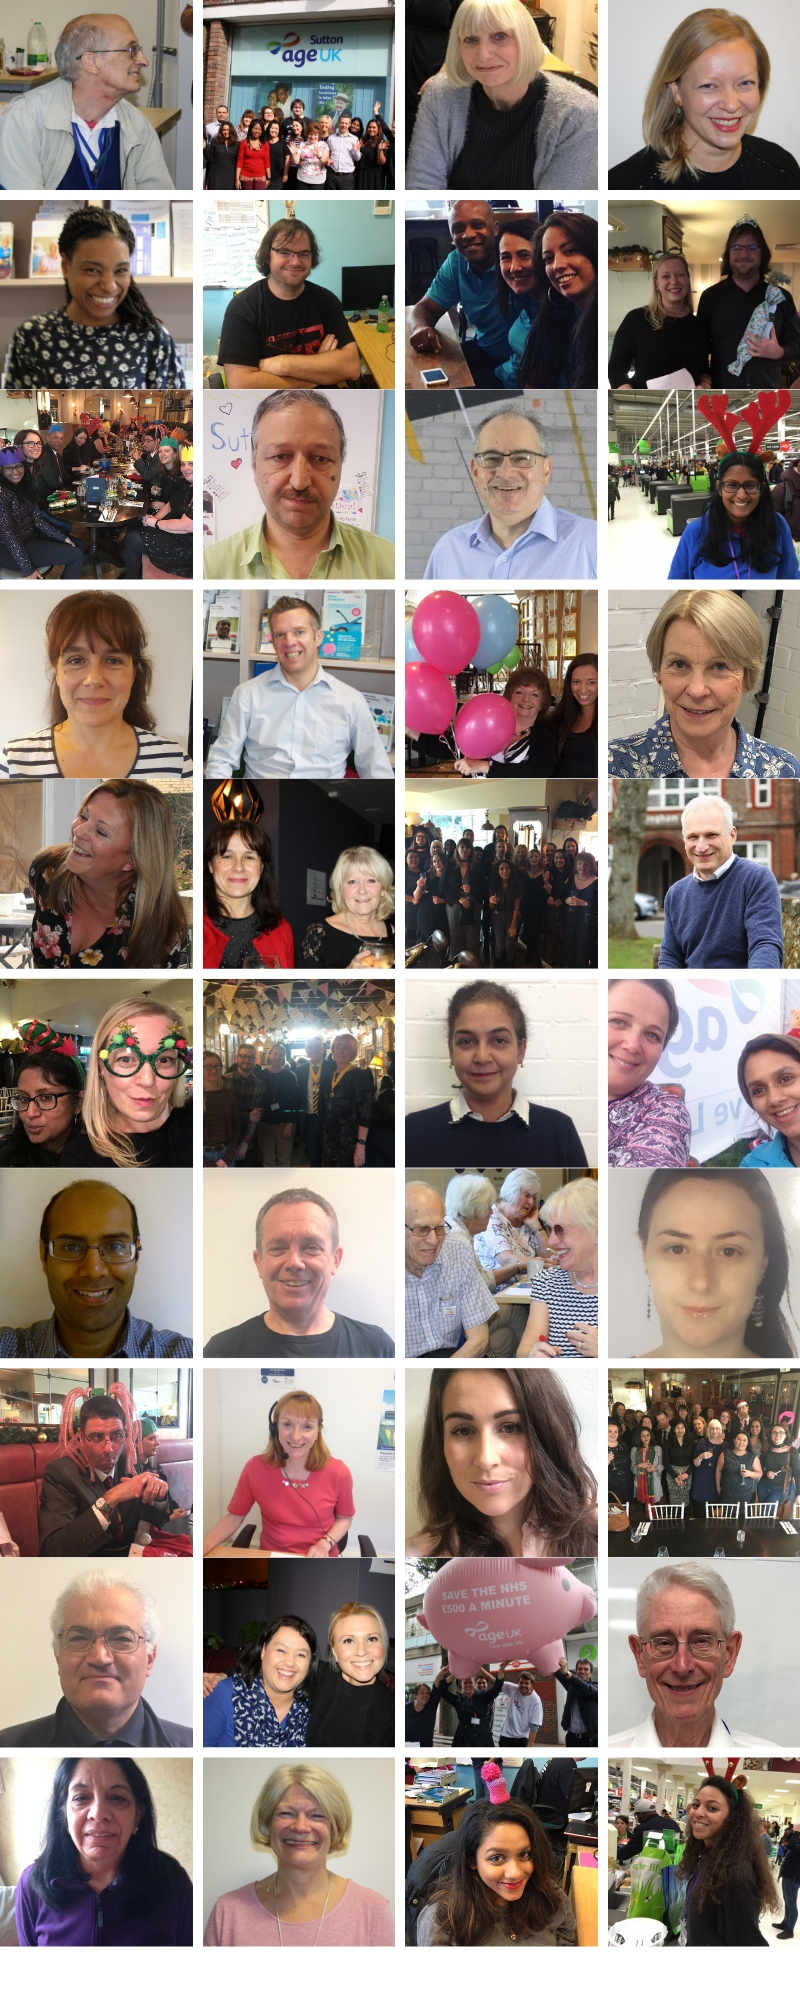 image collage of staff and volunteers of Age UK Sutton